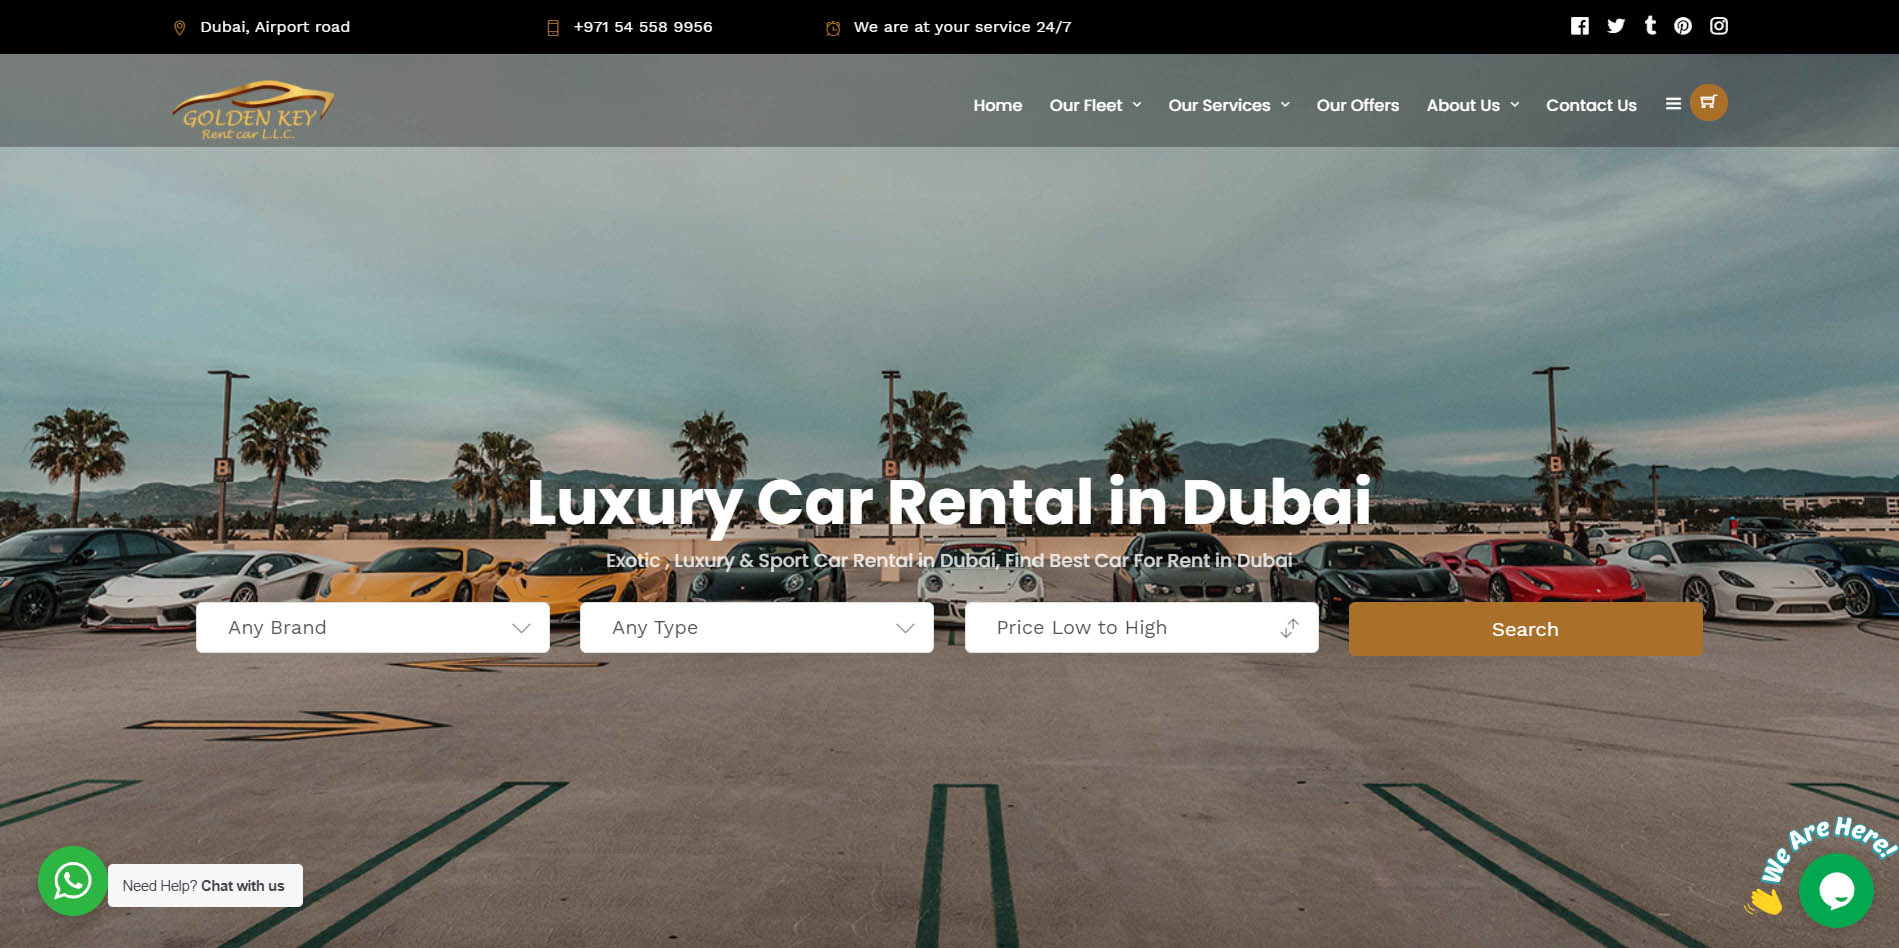 Gk Car Rental Dubai